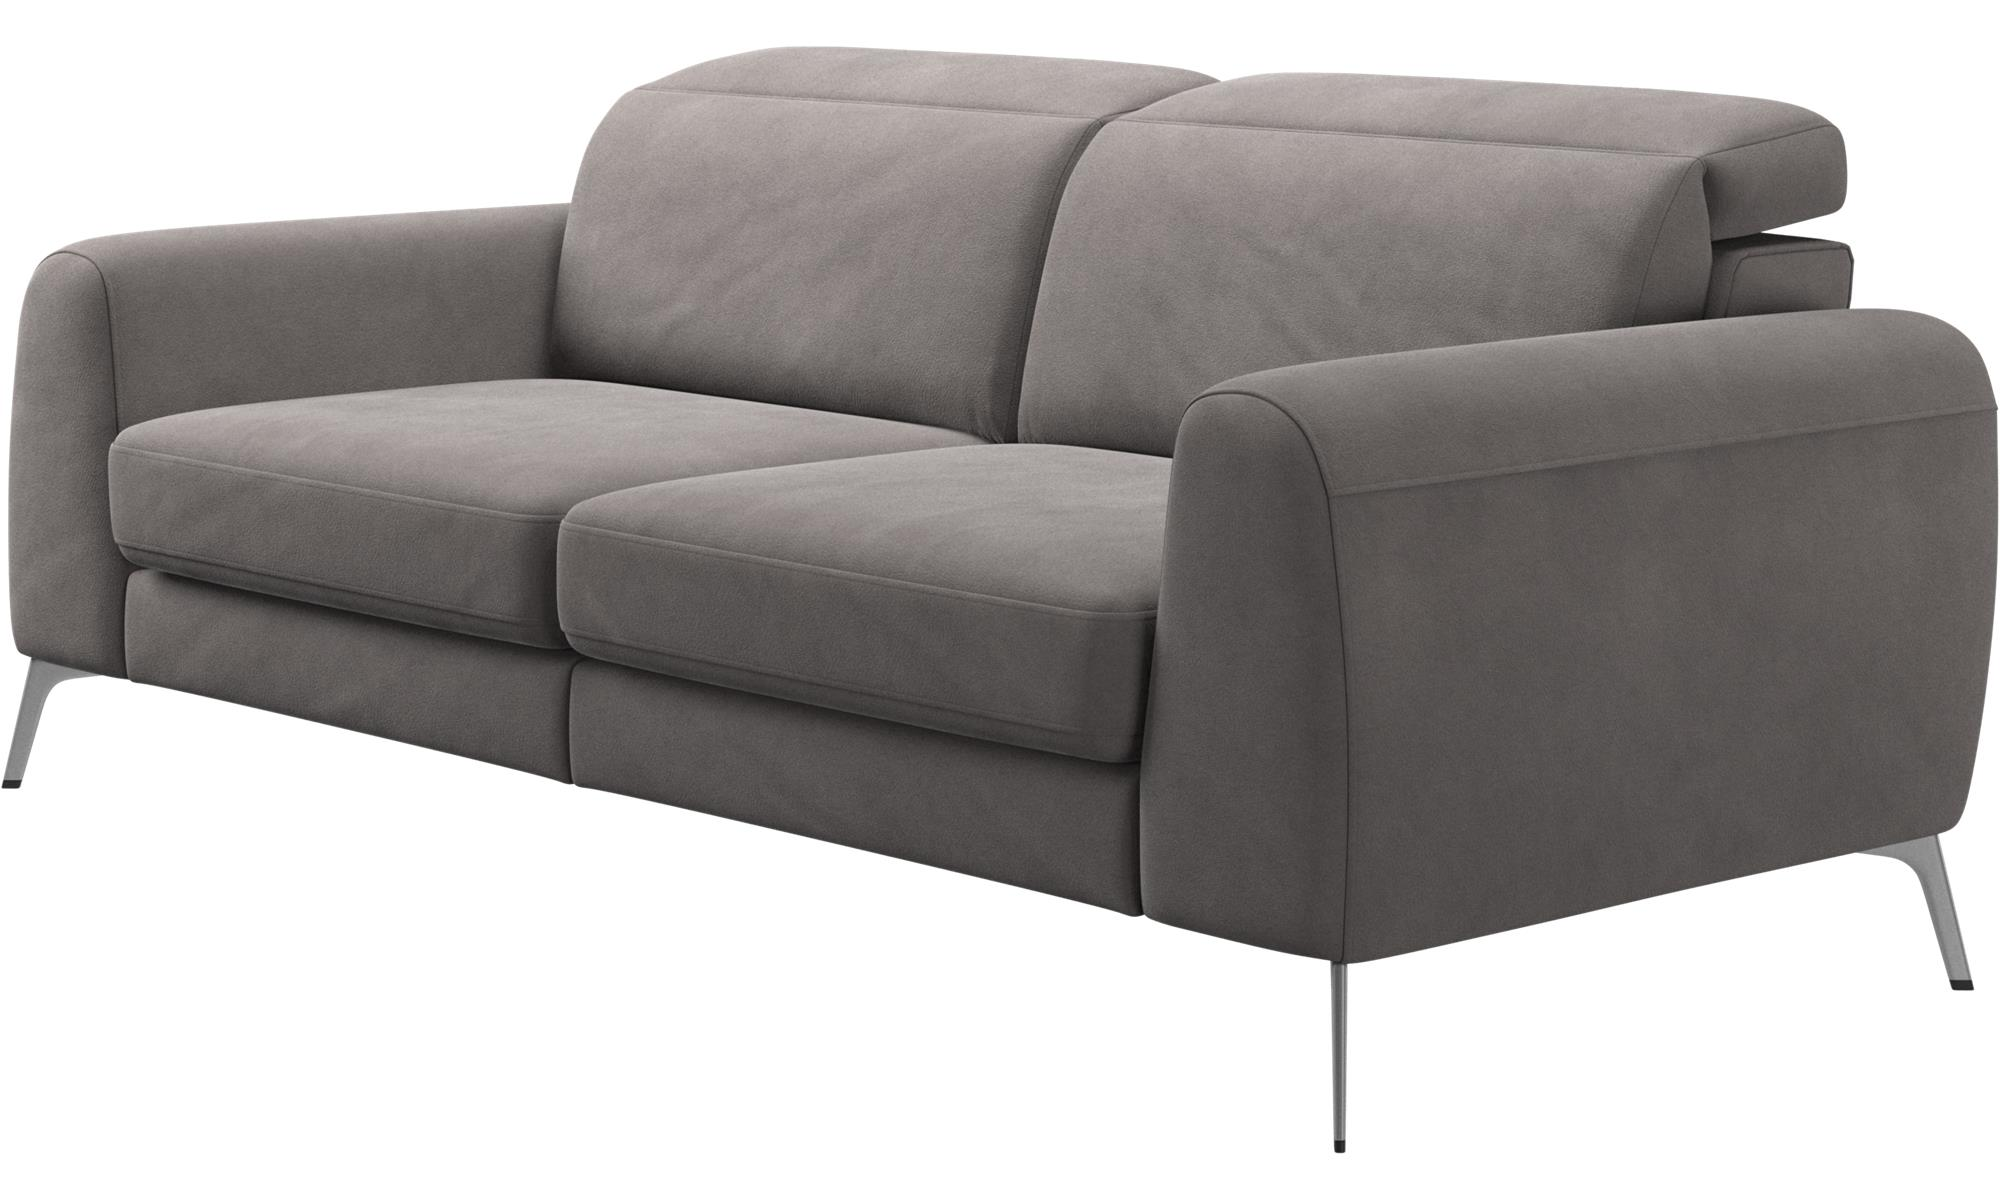 vignette sofa bed collection frost beds jaymar empire front sofasbeds style double fit contemporary